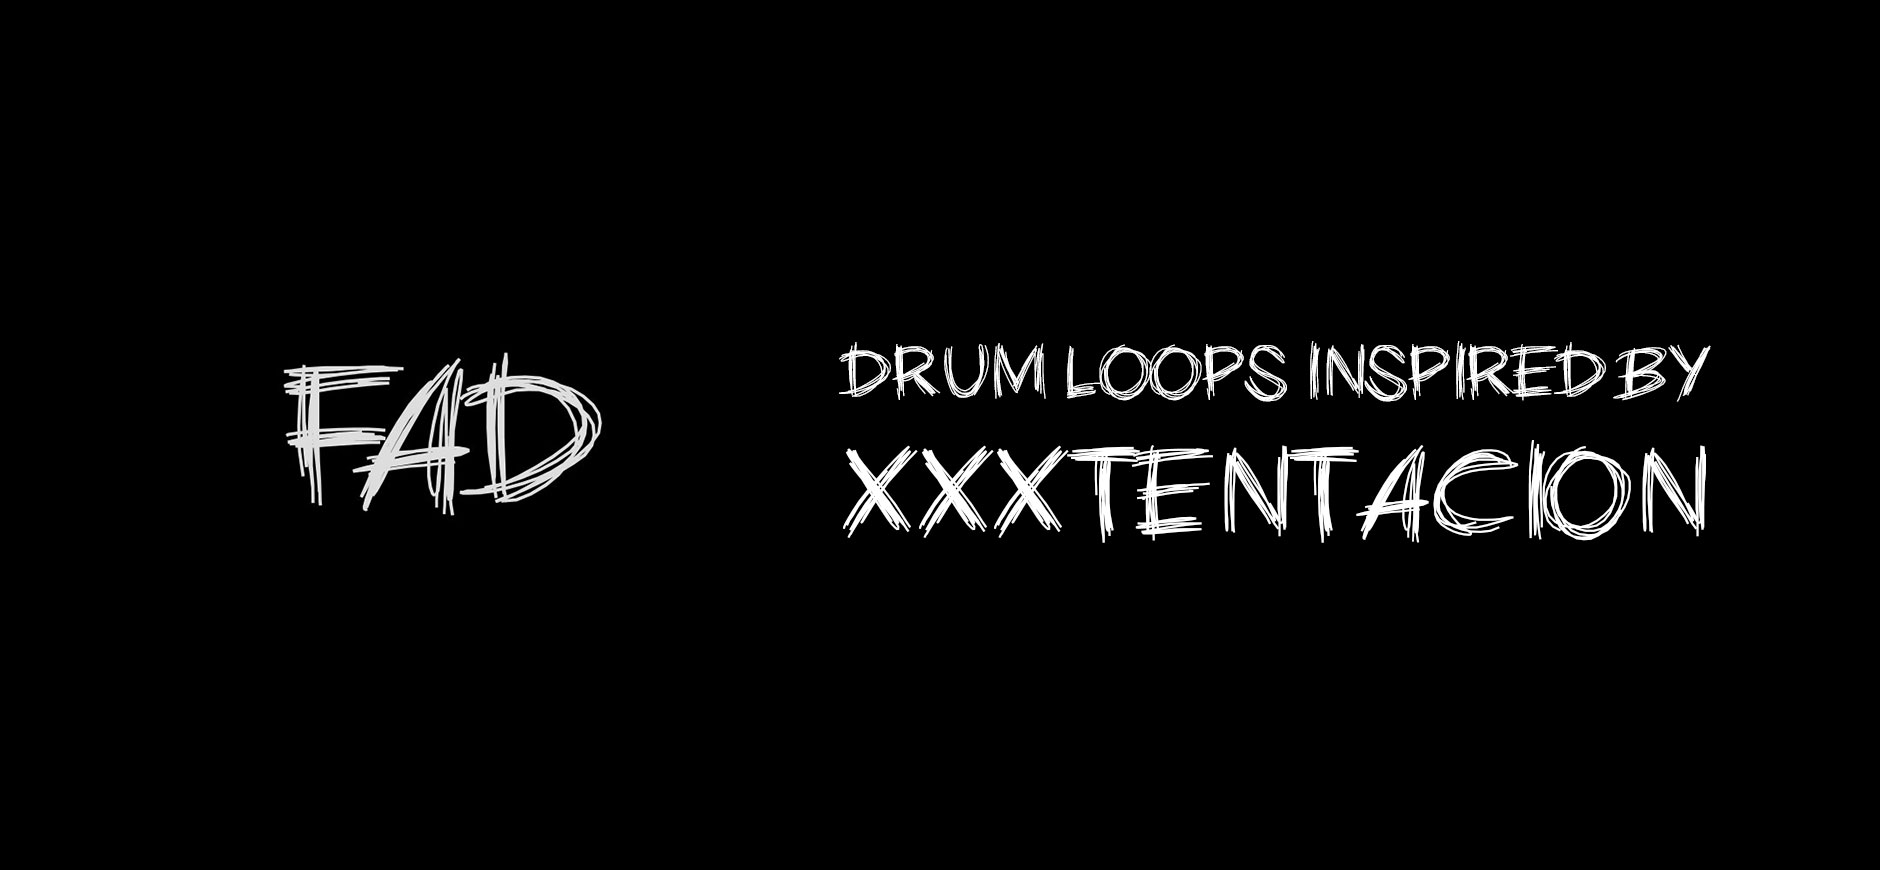 BAD! Drum Loops Kit Inspired by XXXTentacion